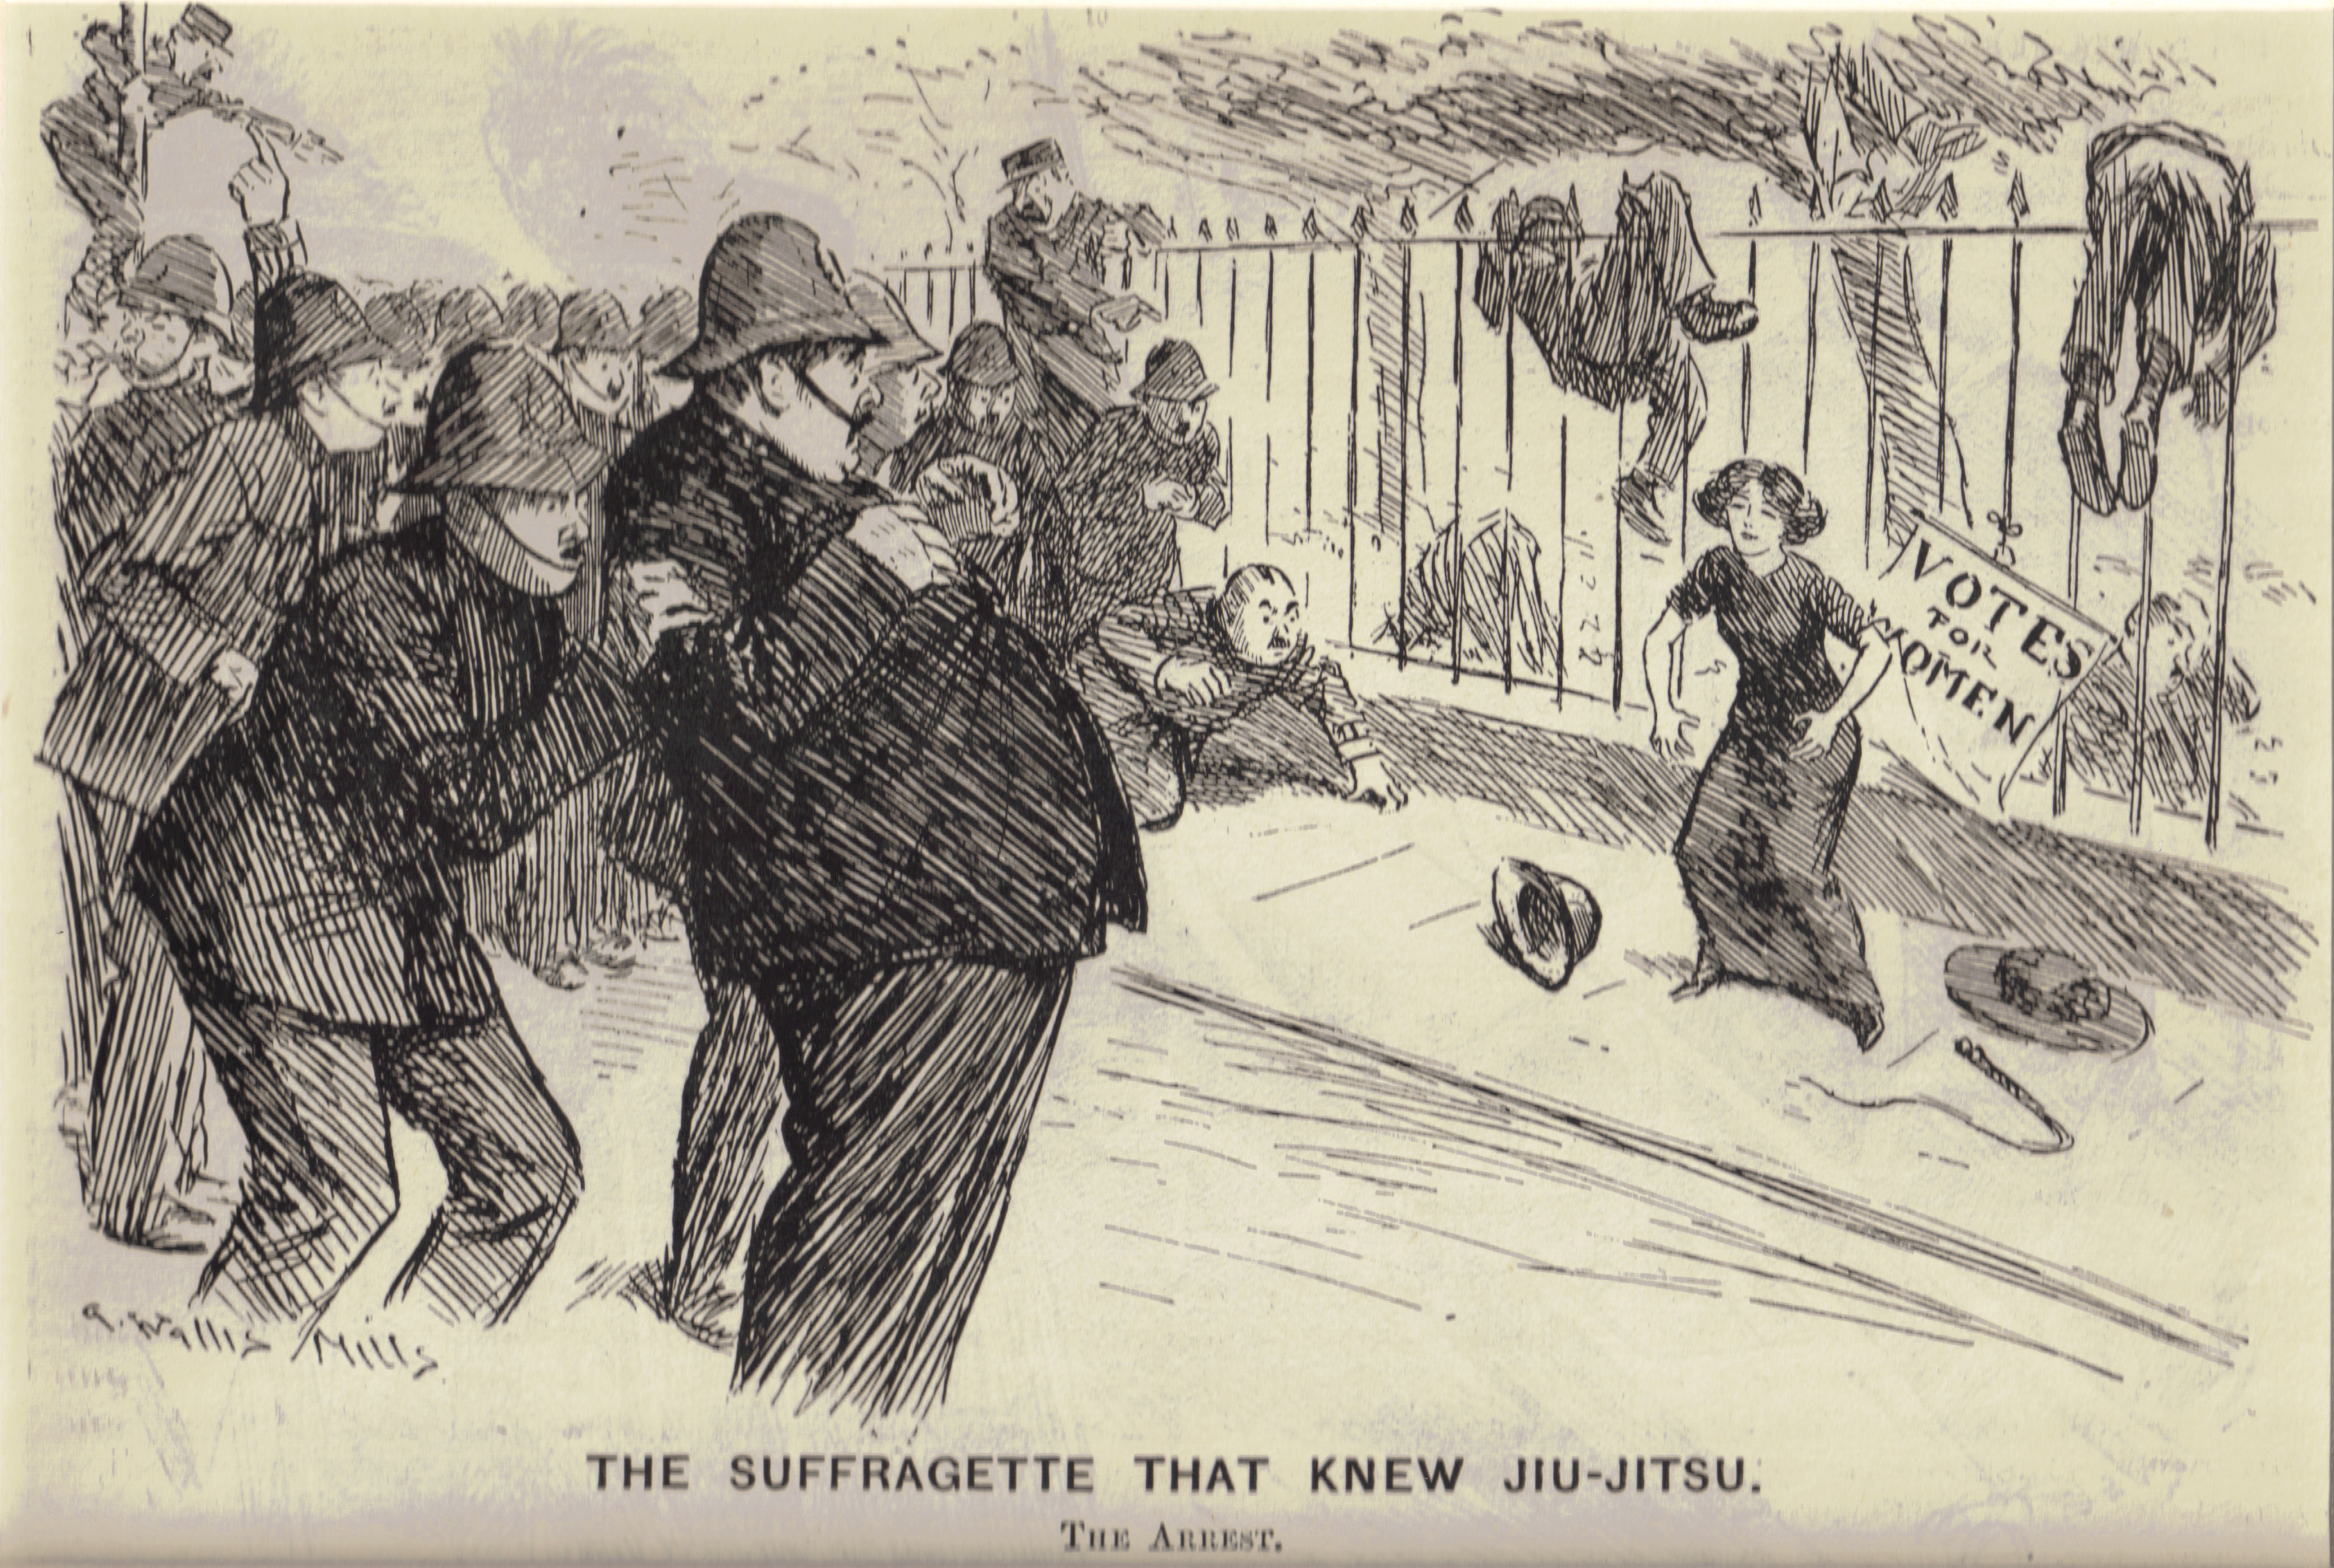 Suffragette that knew jiujitsu